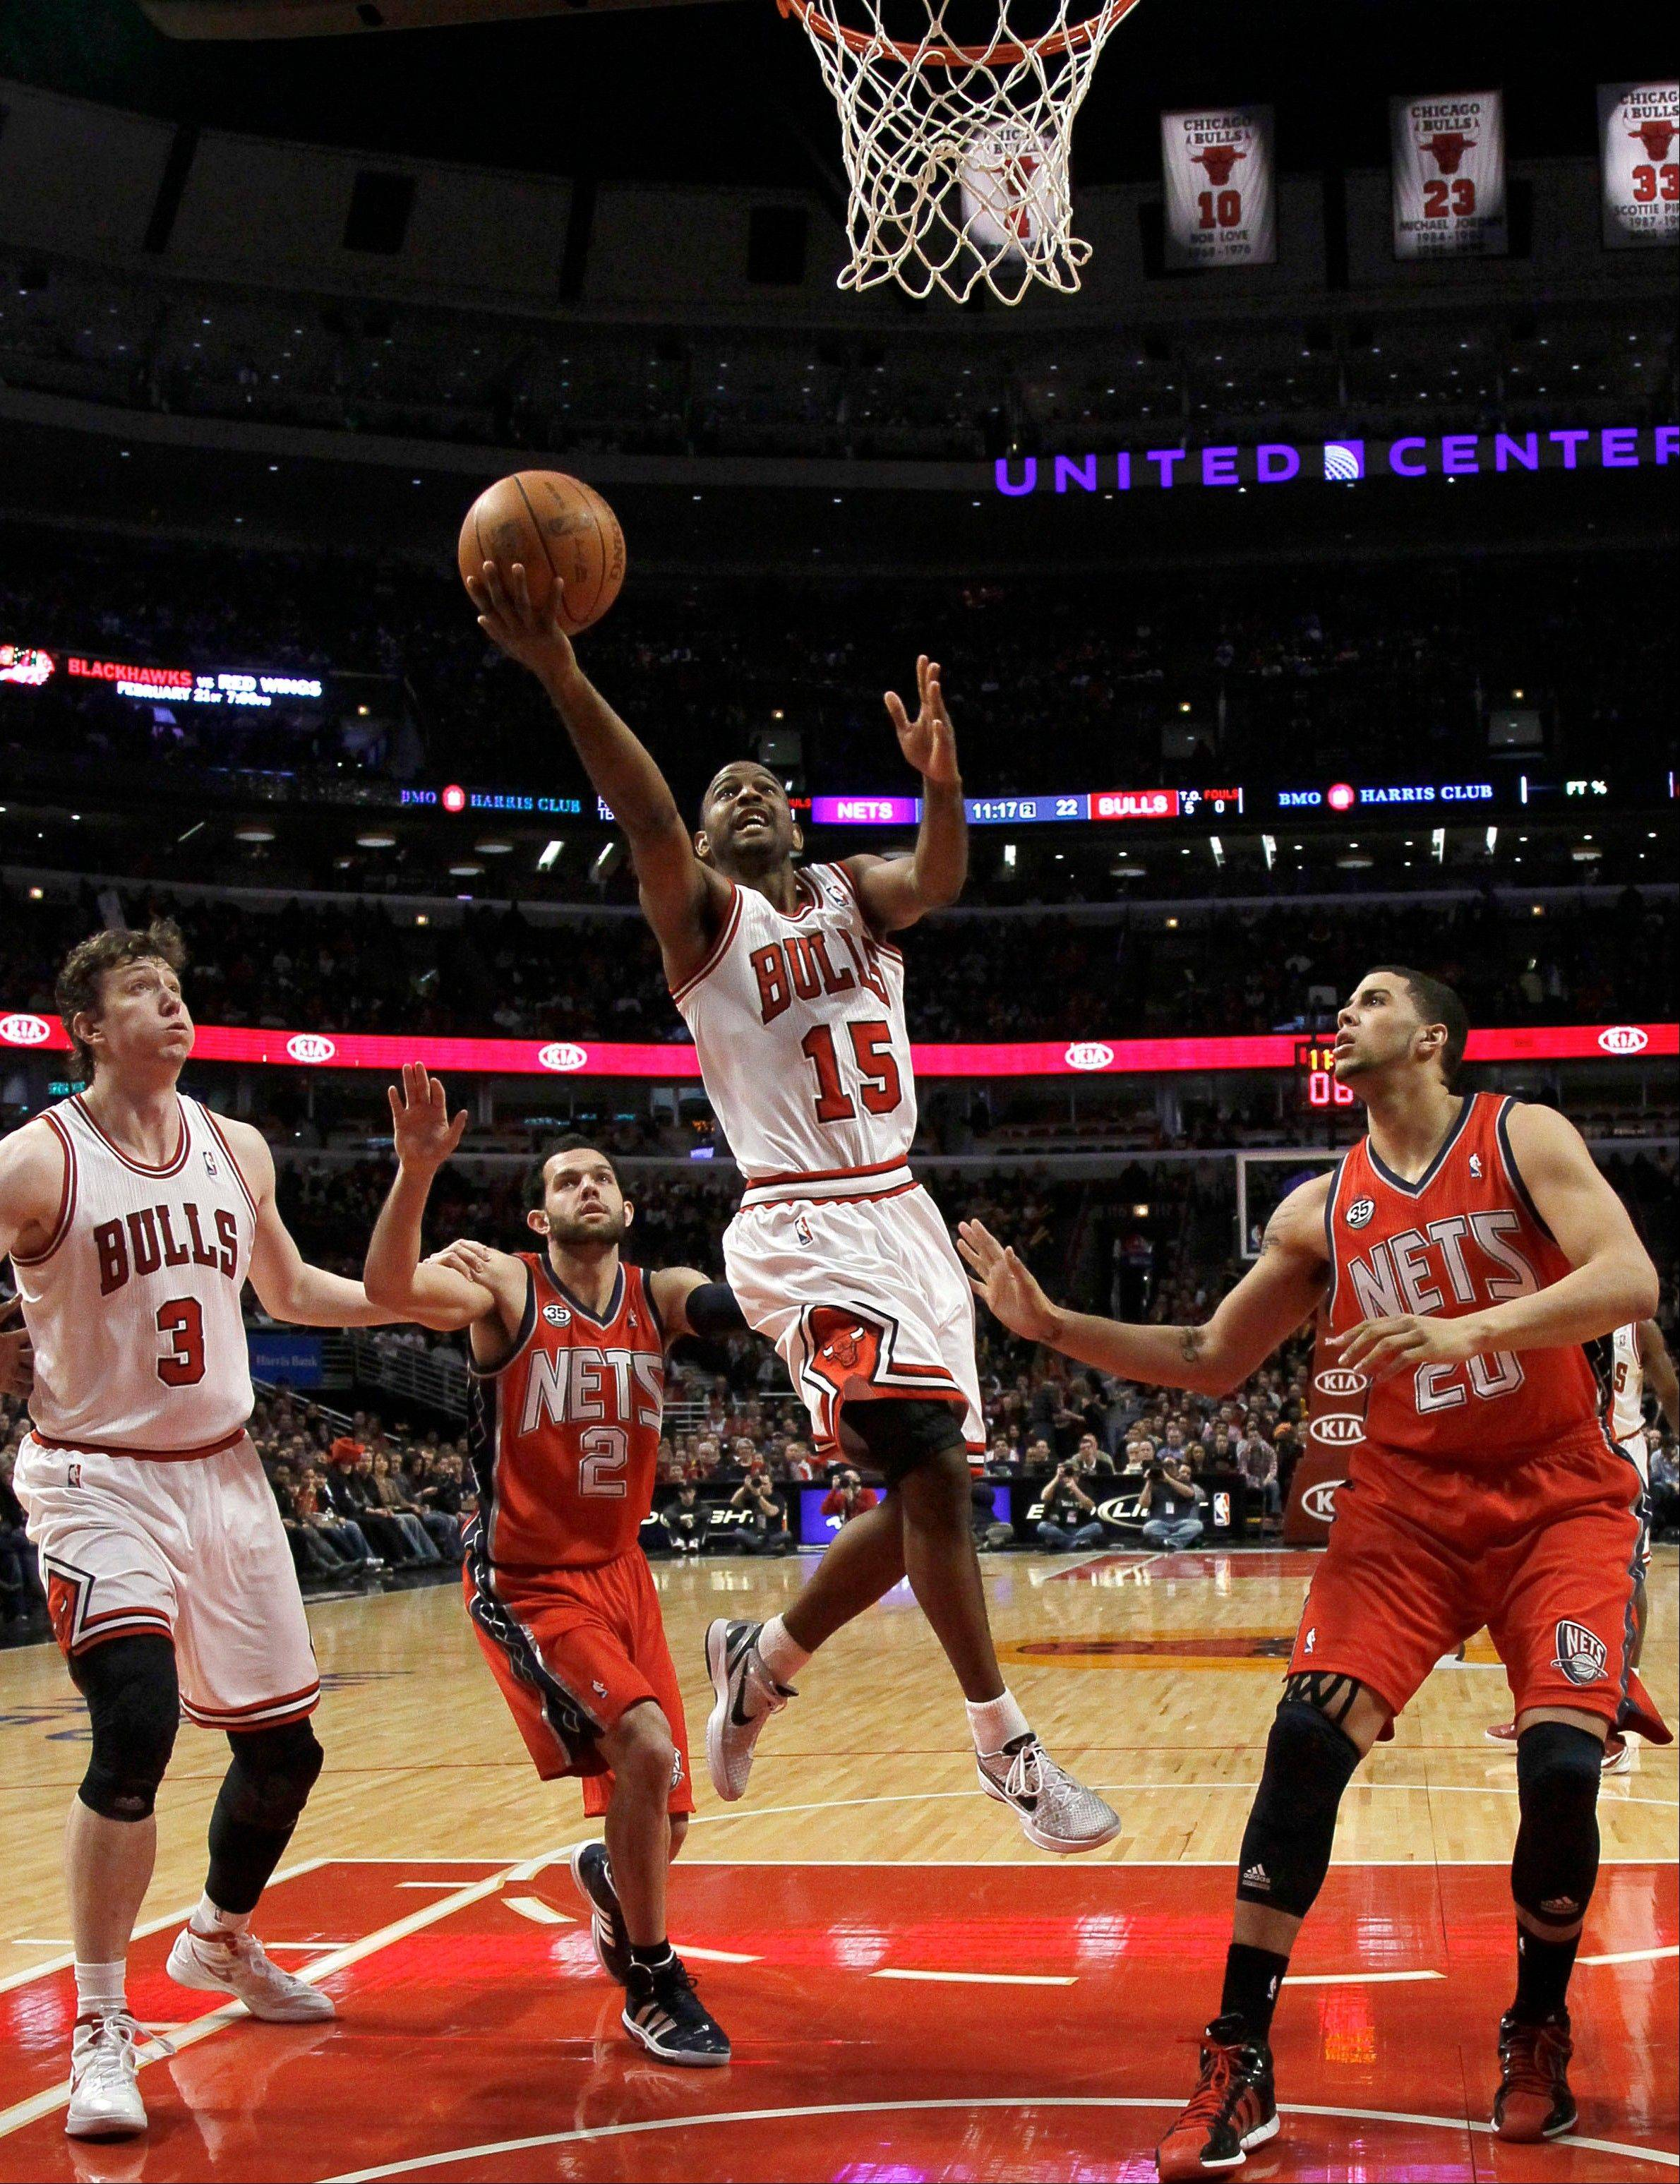 Chicago Bulls guard John Lucas (15) shoots to score past New Jersey Nets point guard Jordan Farmar (2) and Jordan Williams (20) as Bulls' Omer Asik (3) watches the play Saturday during the first half in Chicago.